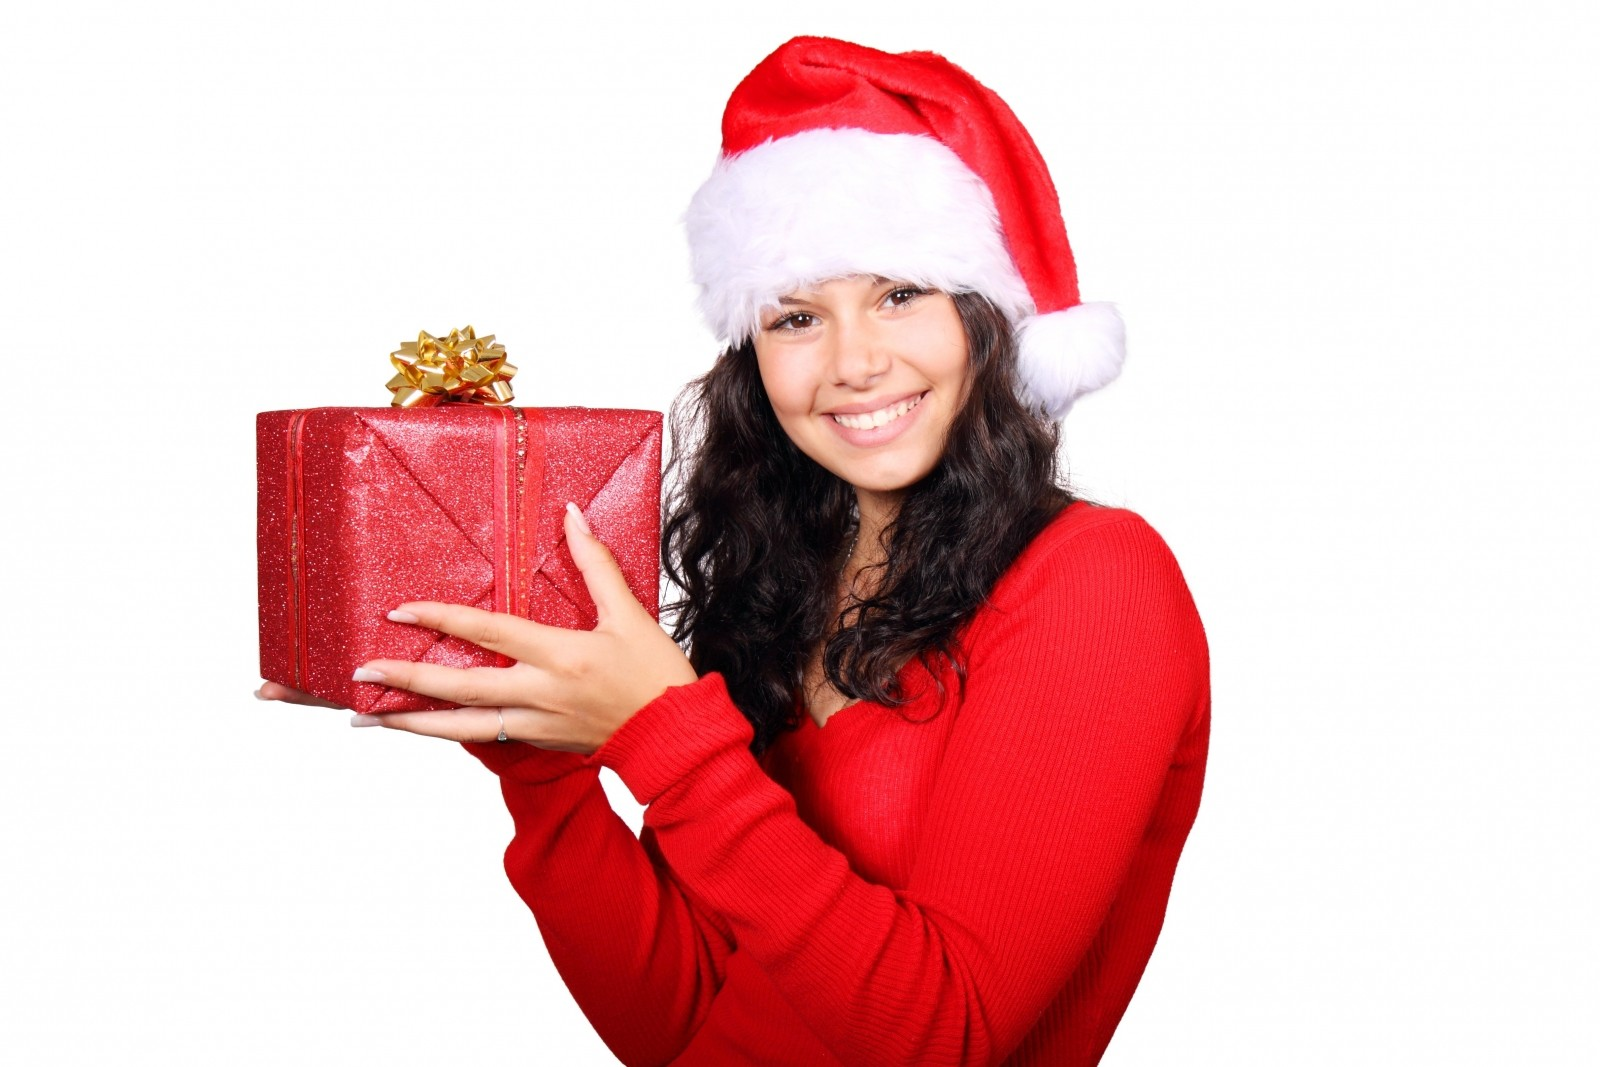 box-christmas-claus-cute-female-gift-girl-happy.jpg